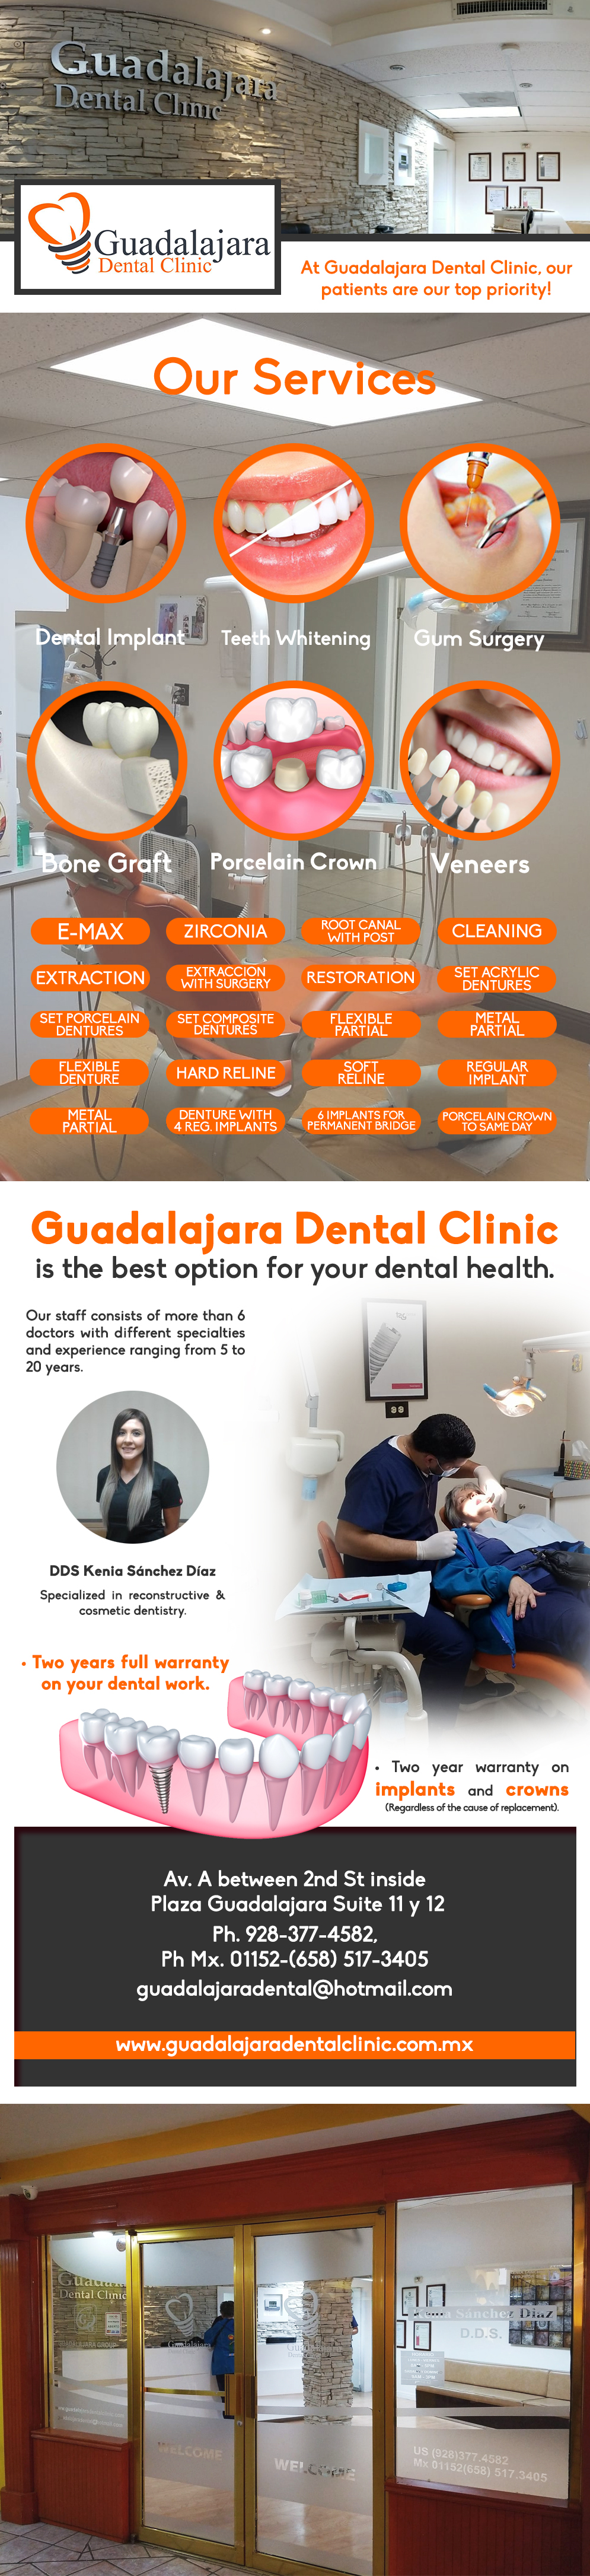 Guadalajara Dental Clinic DDS Kenia Sánchez in Algodones  in Algodones  Guadalajara Dental Clinic in Algodones, B.C. SERVICES